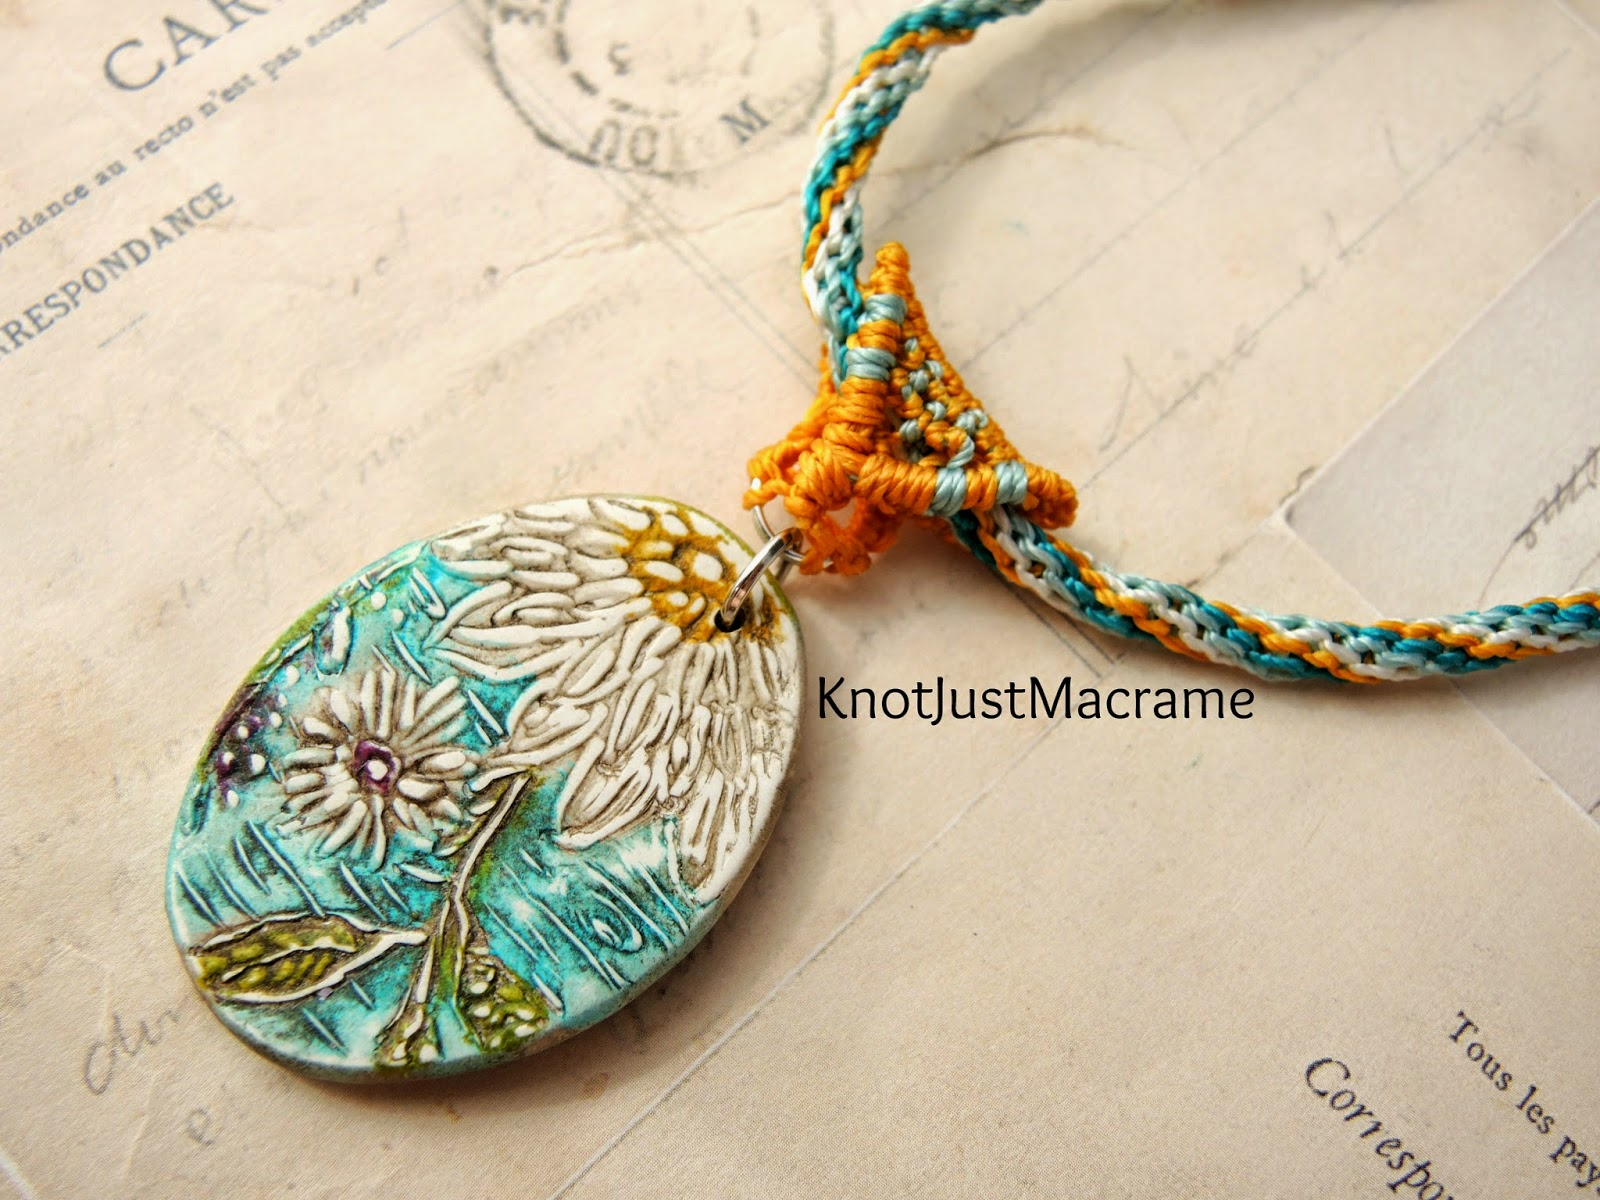 Micro Macrame cord and bail by Sherri Stokey with Humblebeads pendant.